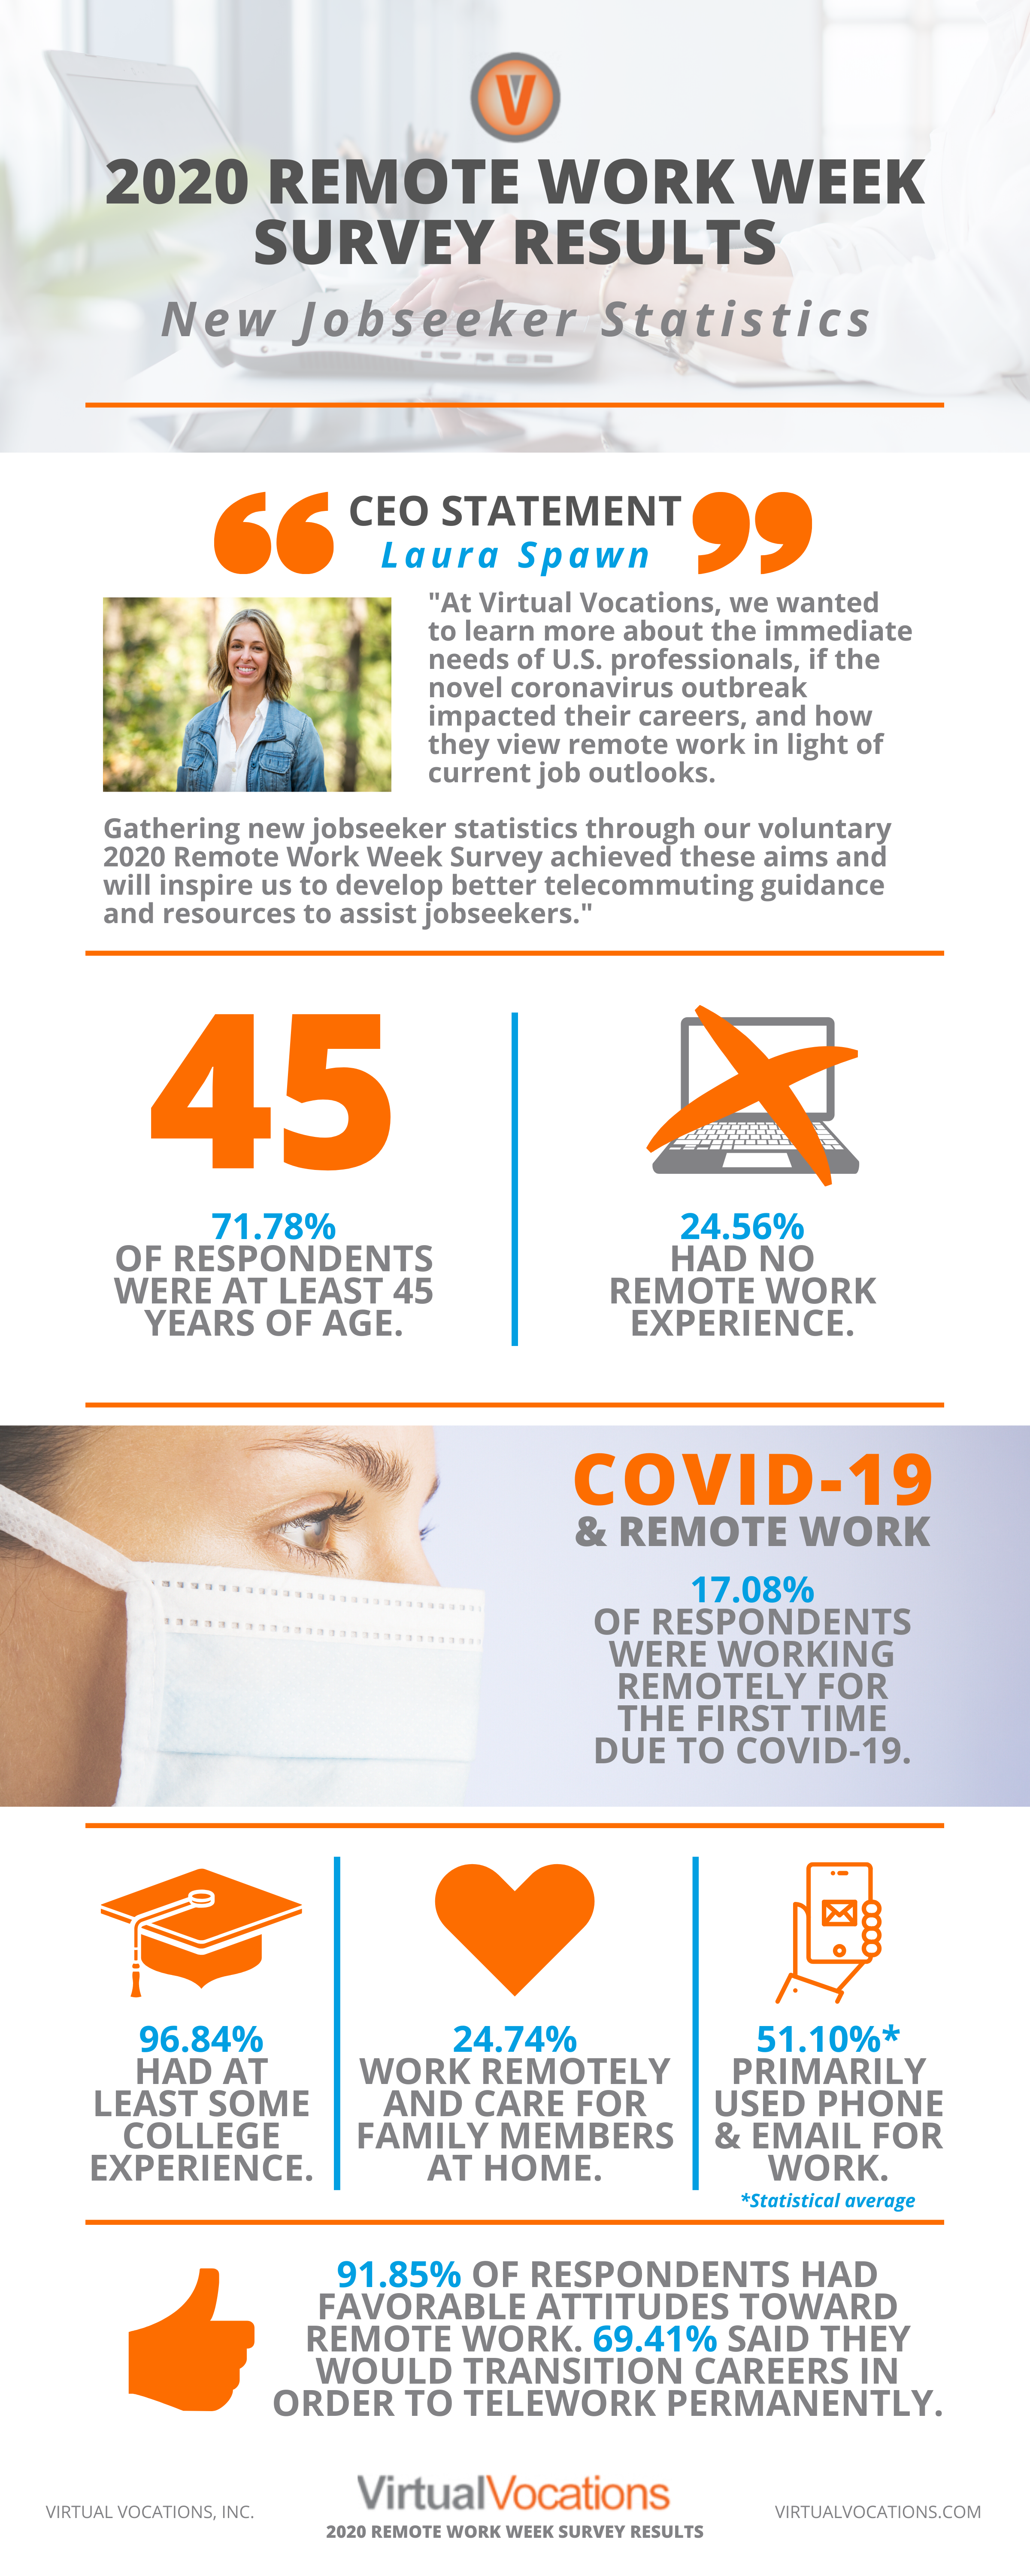 Virtual Vocations - 2020 Remote Work Week Survey Results - New Jobseeker Data Infographic